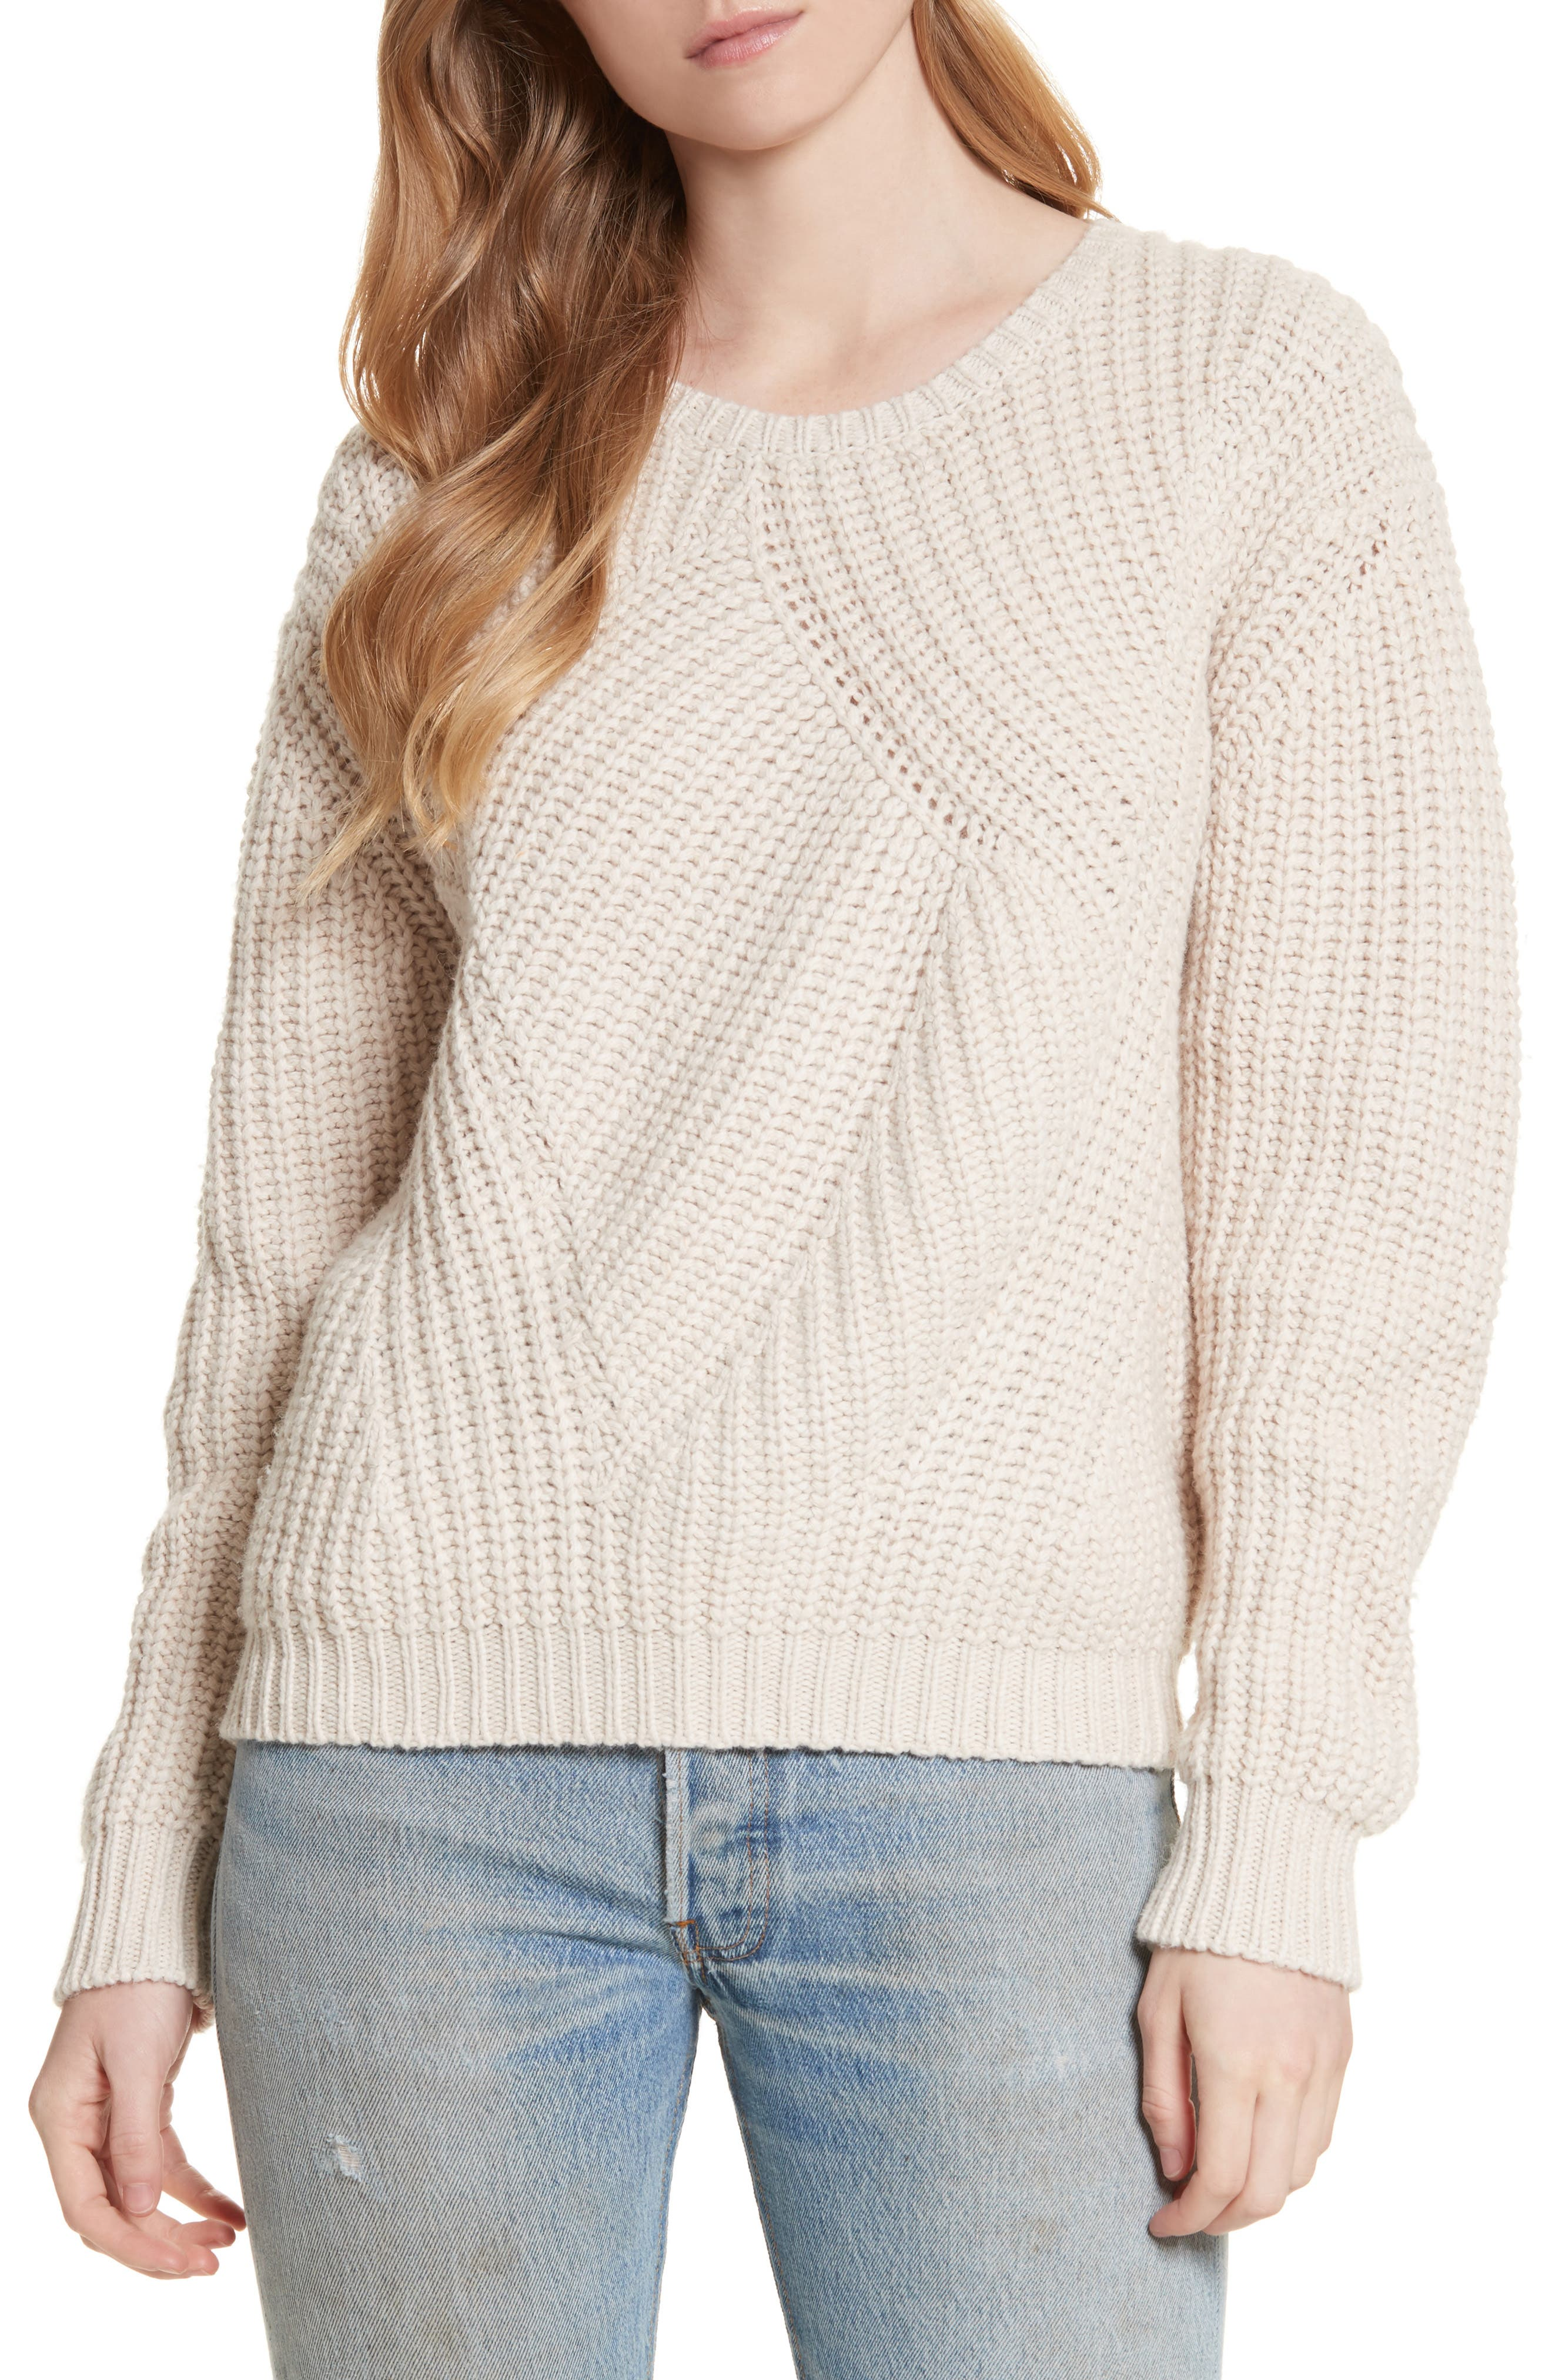 Balenne Sweater,                         Main,                         color, Light Fawn